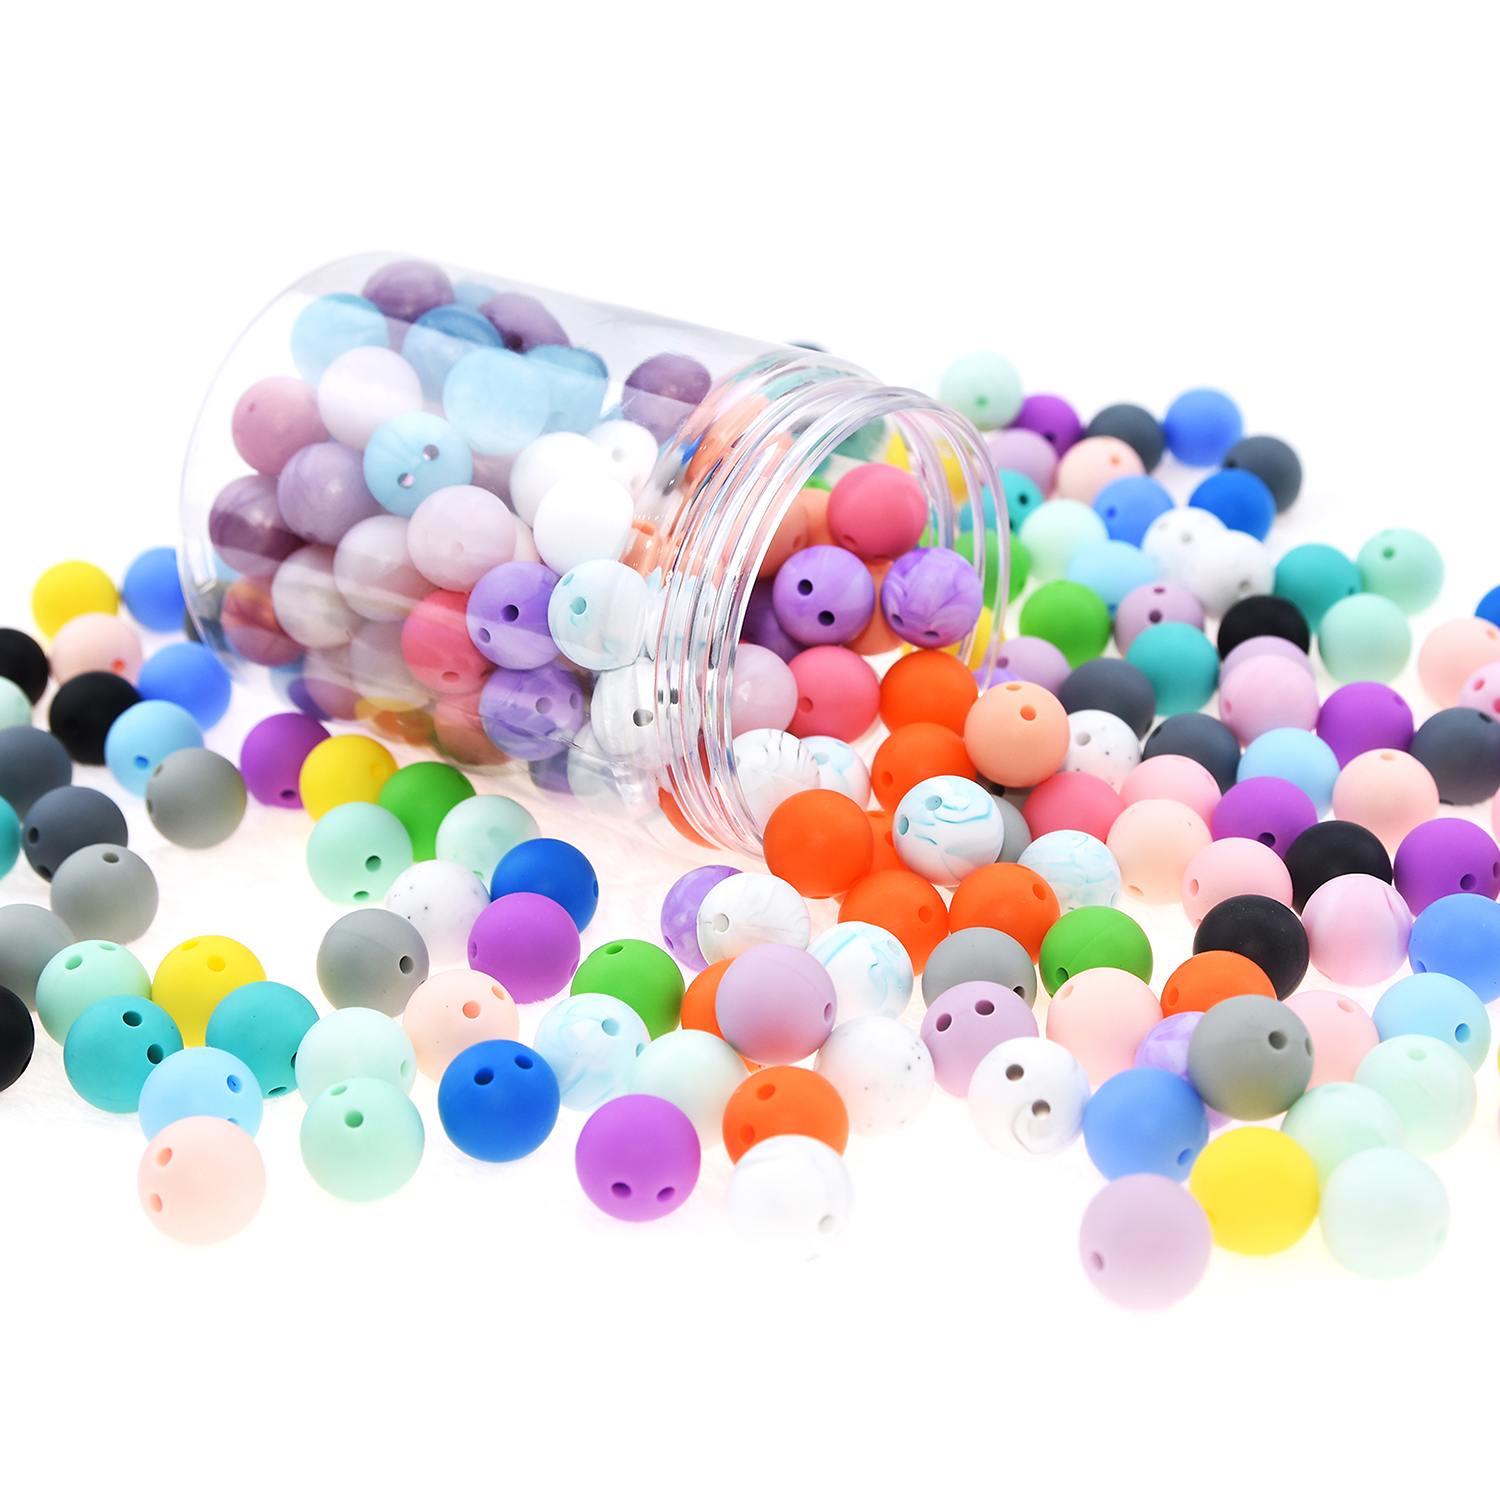 Happyfriends 20 pcs lot 15mm Double Hole Silicone Round Beads Baby Chewing Food Grade Teething Accessories Teethers Jewelry in Baby Teethers from Mother Kids